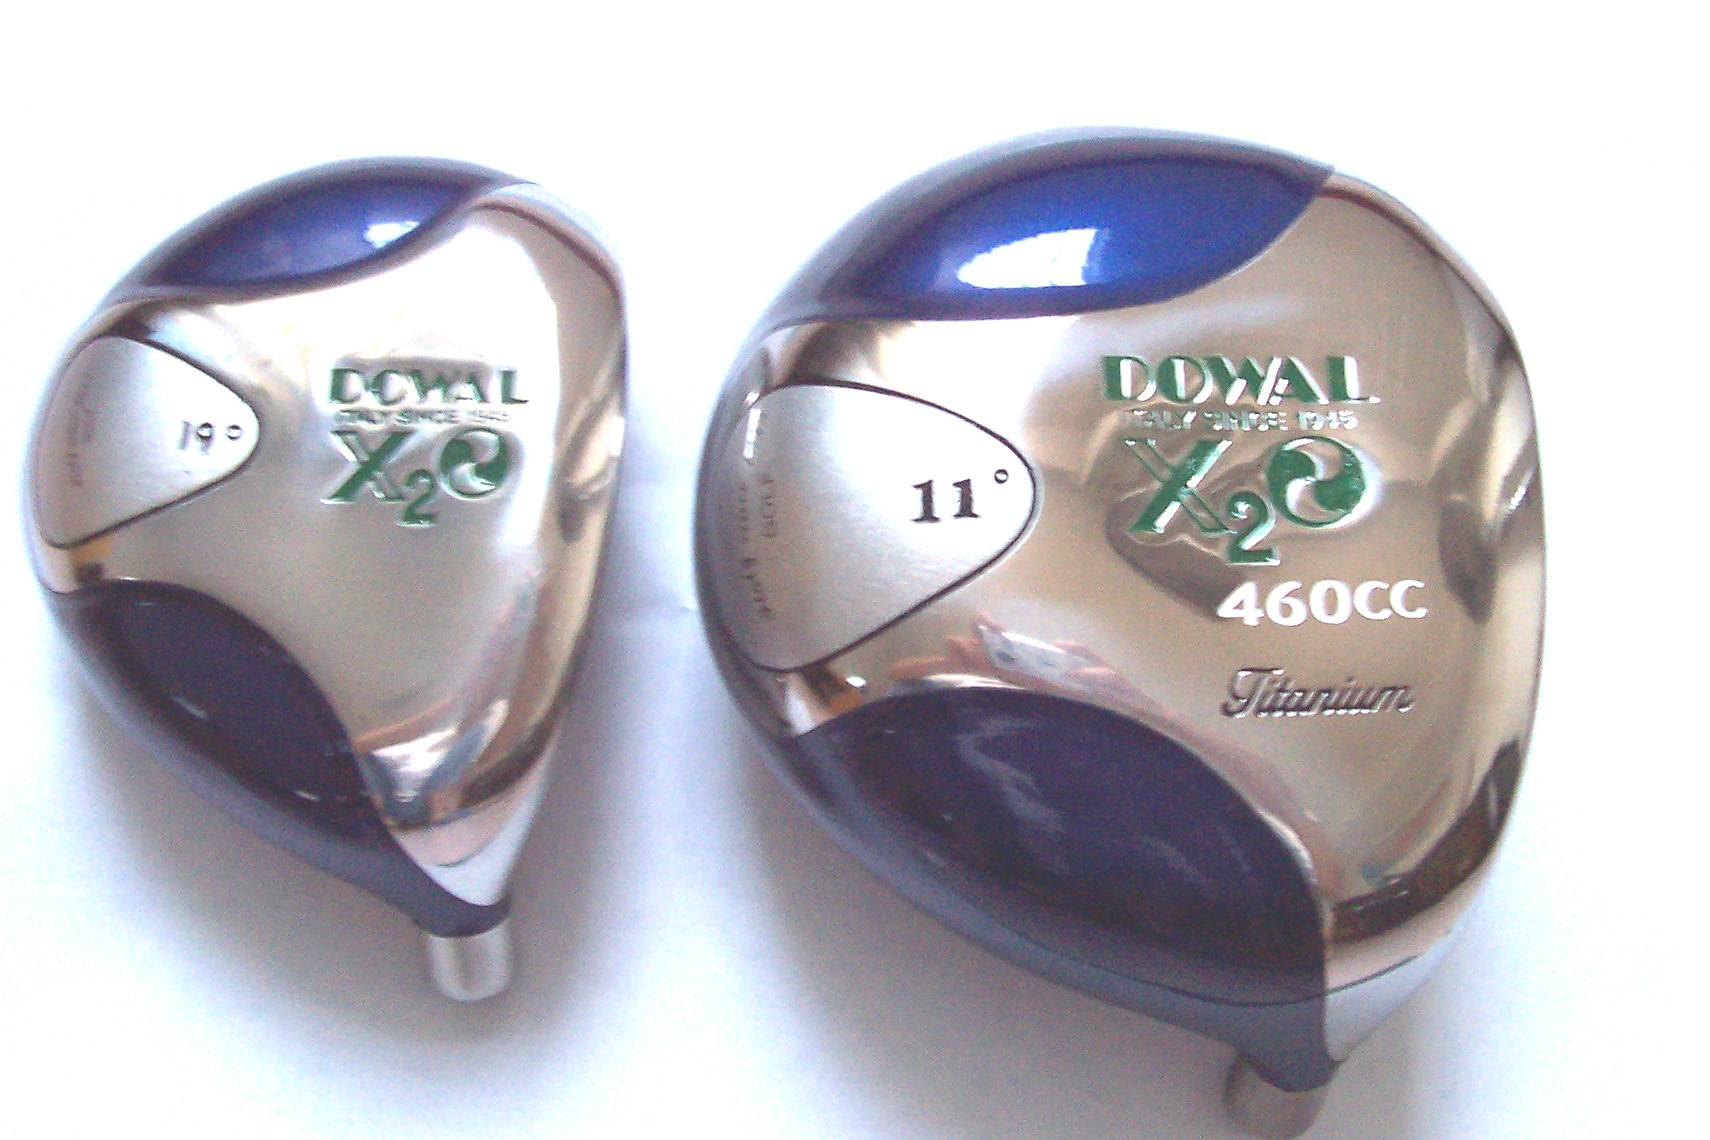 Dowal X2o Golf Club-steel. Carbon. Graphite Half Set